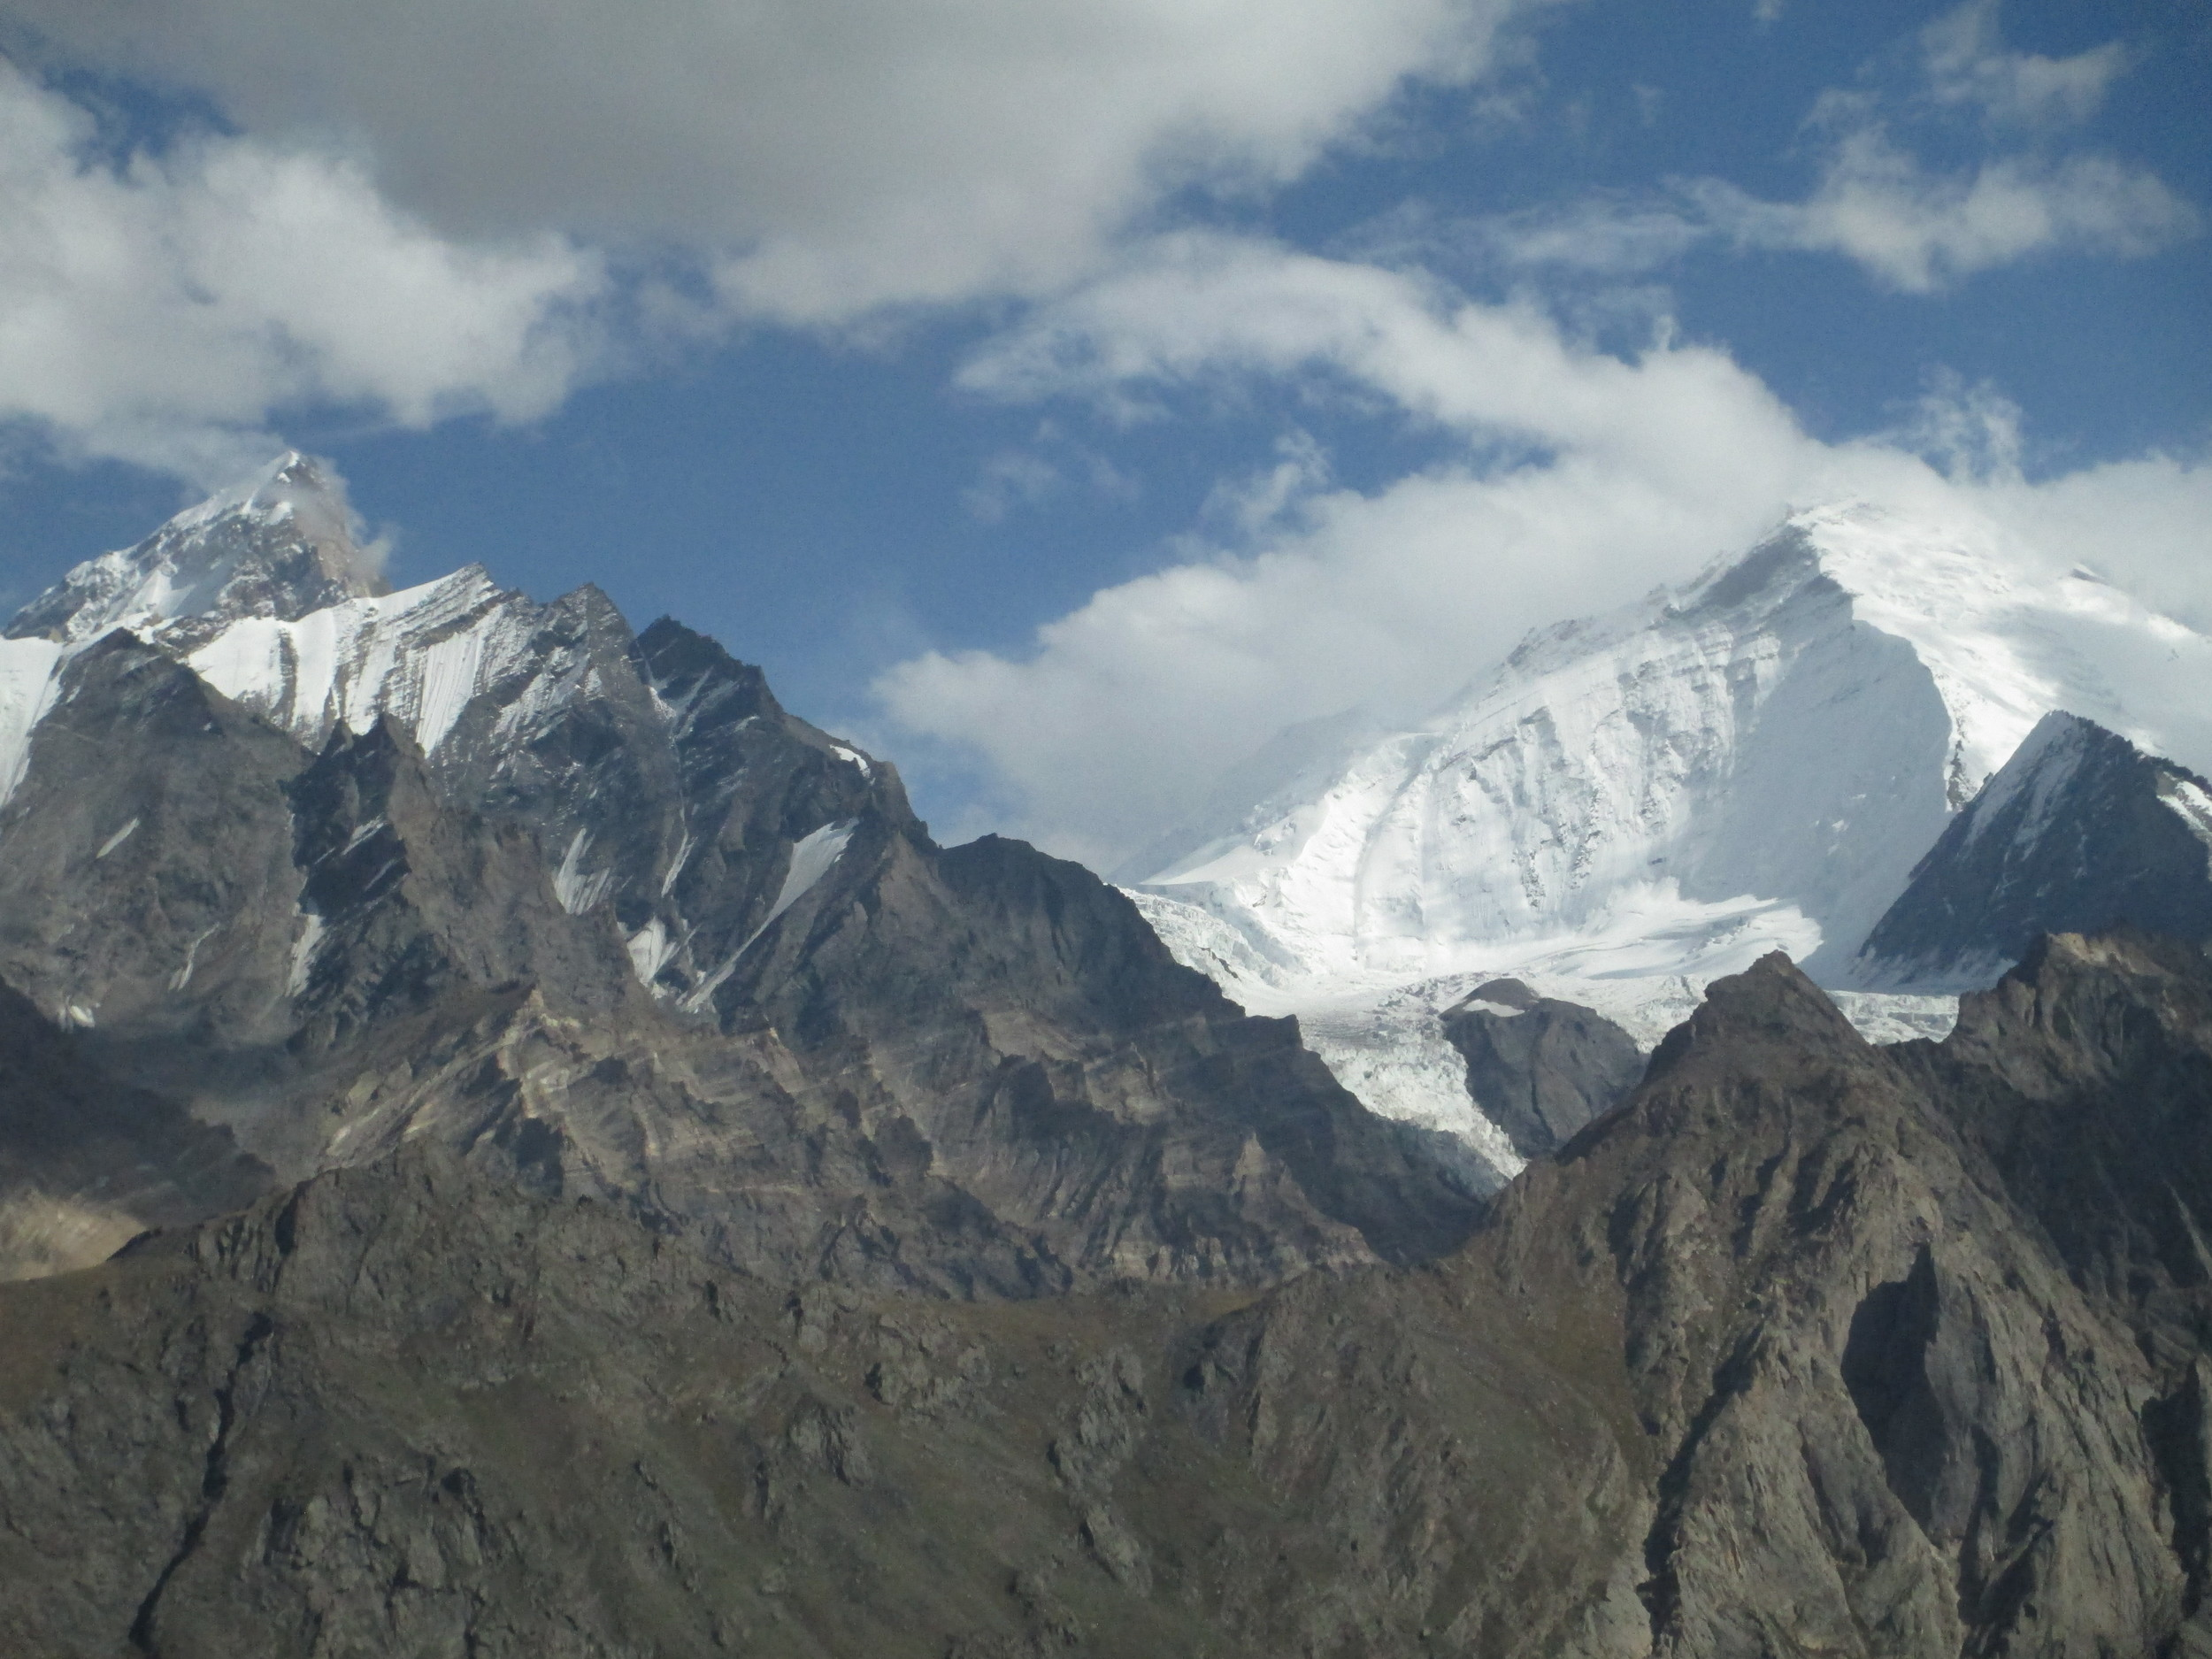 """v\:* {behavior:url(#default#VML);} o\:* {behavior:url(#default#VML);} w\:* {behavior:url(#default#VML);} .shape {behavior:url(#default#VML);}    """"To those who have struggled with them, the mountains reveal beauties that they will not disclose to those who make no effort. That is the reward the mountains give to effort. And it is because they have so much to give and give it so lavishly to those who will wrestle with them that men love the mountains and go back to them again and again. The mountains reserve their choice gifts for those who stand upon their summits."""" — Sir Francis Younghusband.                   Normal   0   false         false   false   false     EN-US   X-NONE   X-NONE                                                                                                                                                                                                                                                                                                                                                                       /* Style Definitions */  table.MsoNormalTable {mso-style-name:""""Table Normal""""; mso-tstyle-rowband-size:0; mso-tstyle-colband-size:0; mso-style-noshow:yes; mso-style-priority:99; mso-style-parent:""""""""; mso-padding-alt:0cm 5.4pt 0cm 5.4pt; mso-para-margin-top:0cm; mso-para-margin-right:0cm; mso-para-margin-bottom:10.0pt; mso-para-margin-left:0cm; line-height:115%; mso-pagination:widow-orphan; font-size:11.0pt; font-family:""""Calibri"""",""""sans-serif""""; mso-ascii-font-family:Calibri; mso-ascii-theme-font:minor-latin; mso-hansi-font-family:Calibri; mso-hansi-theme-font:minor-latin;}"""